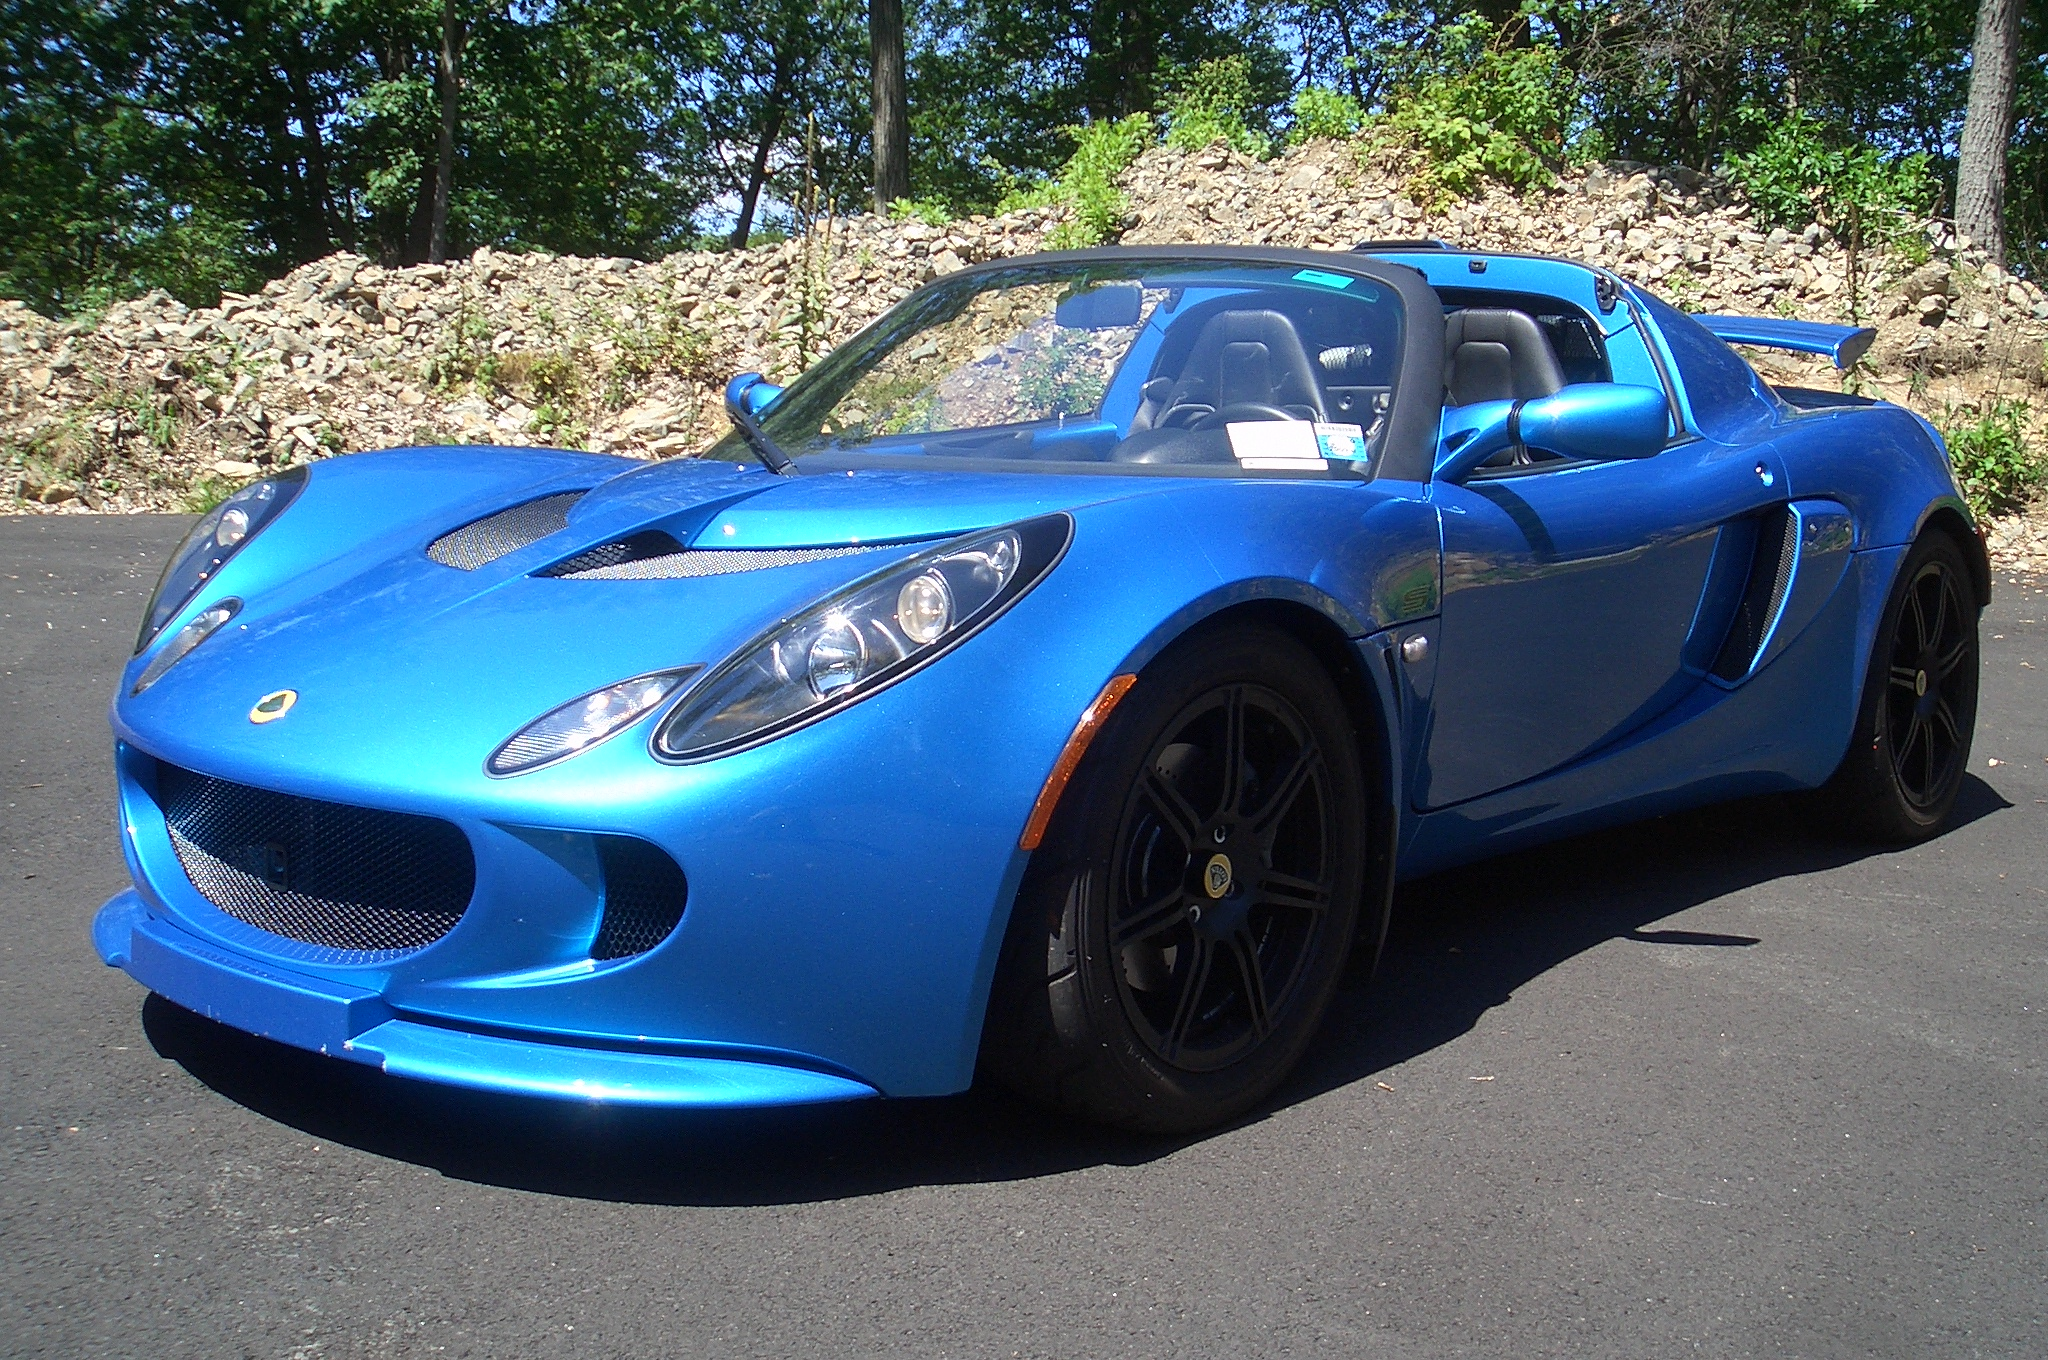 2007 Lotus Exige S with just